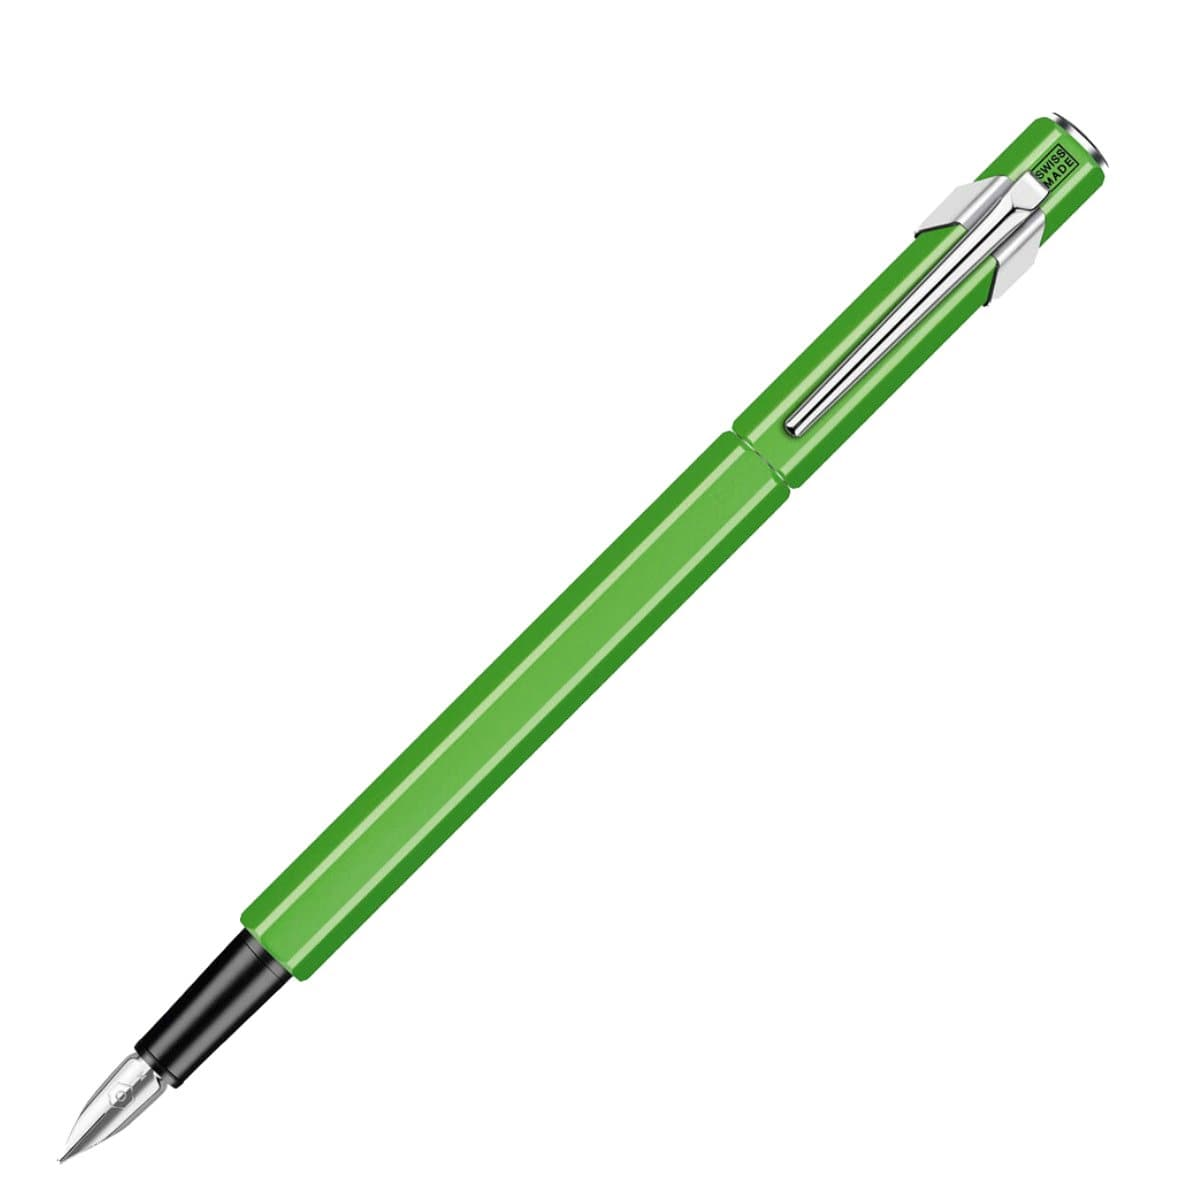 CARAN d'ACHE 849 Fountain Pen Metal, M nib, Fluo Green